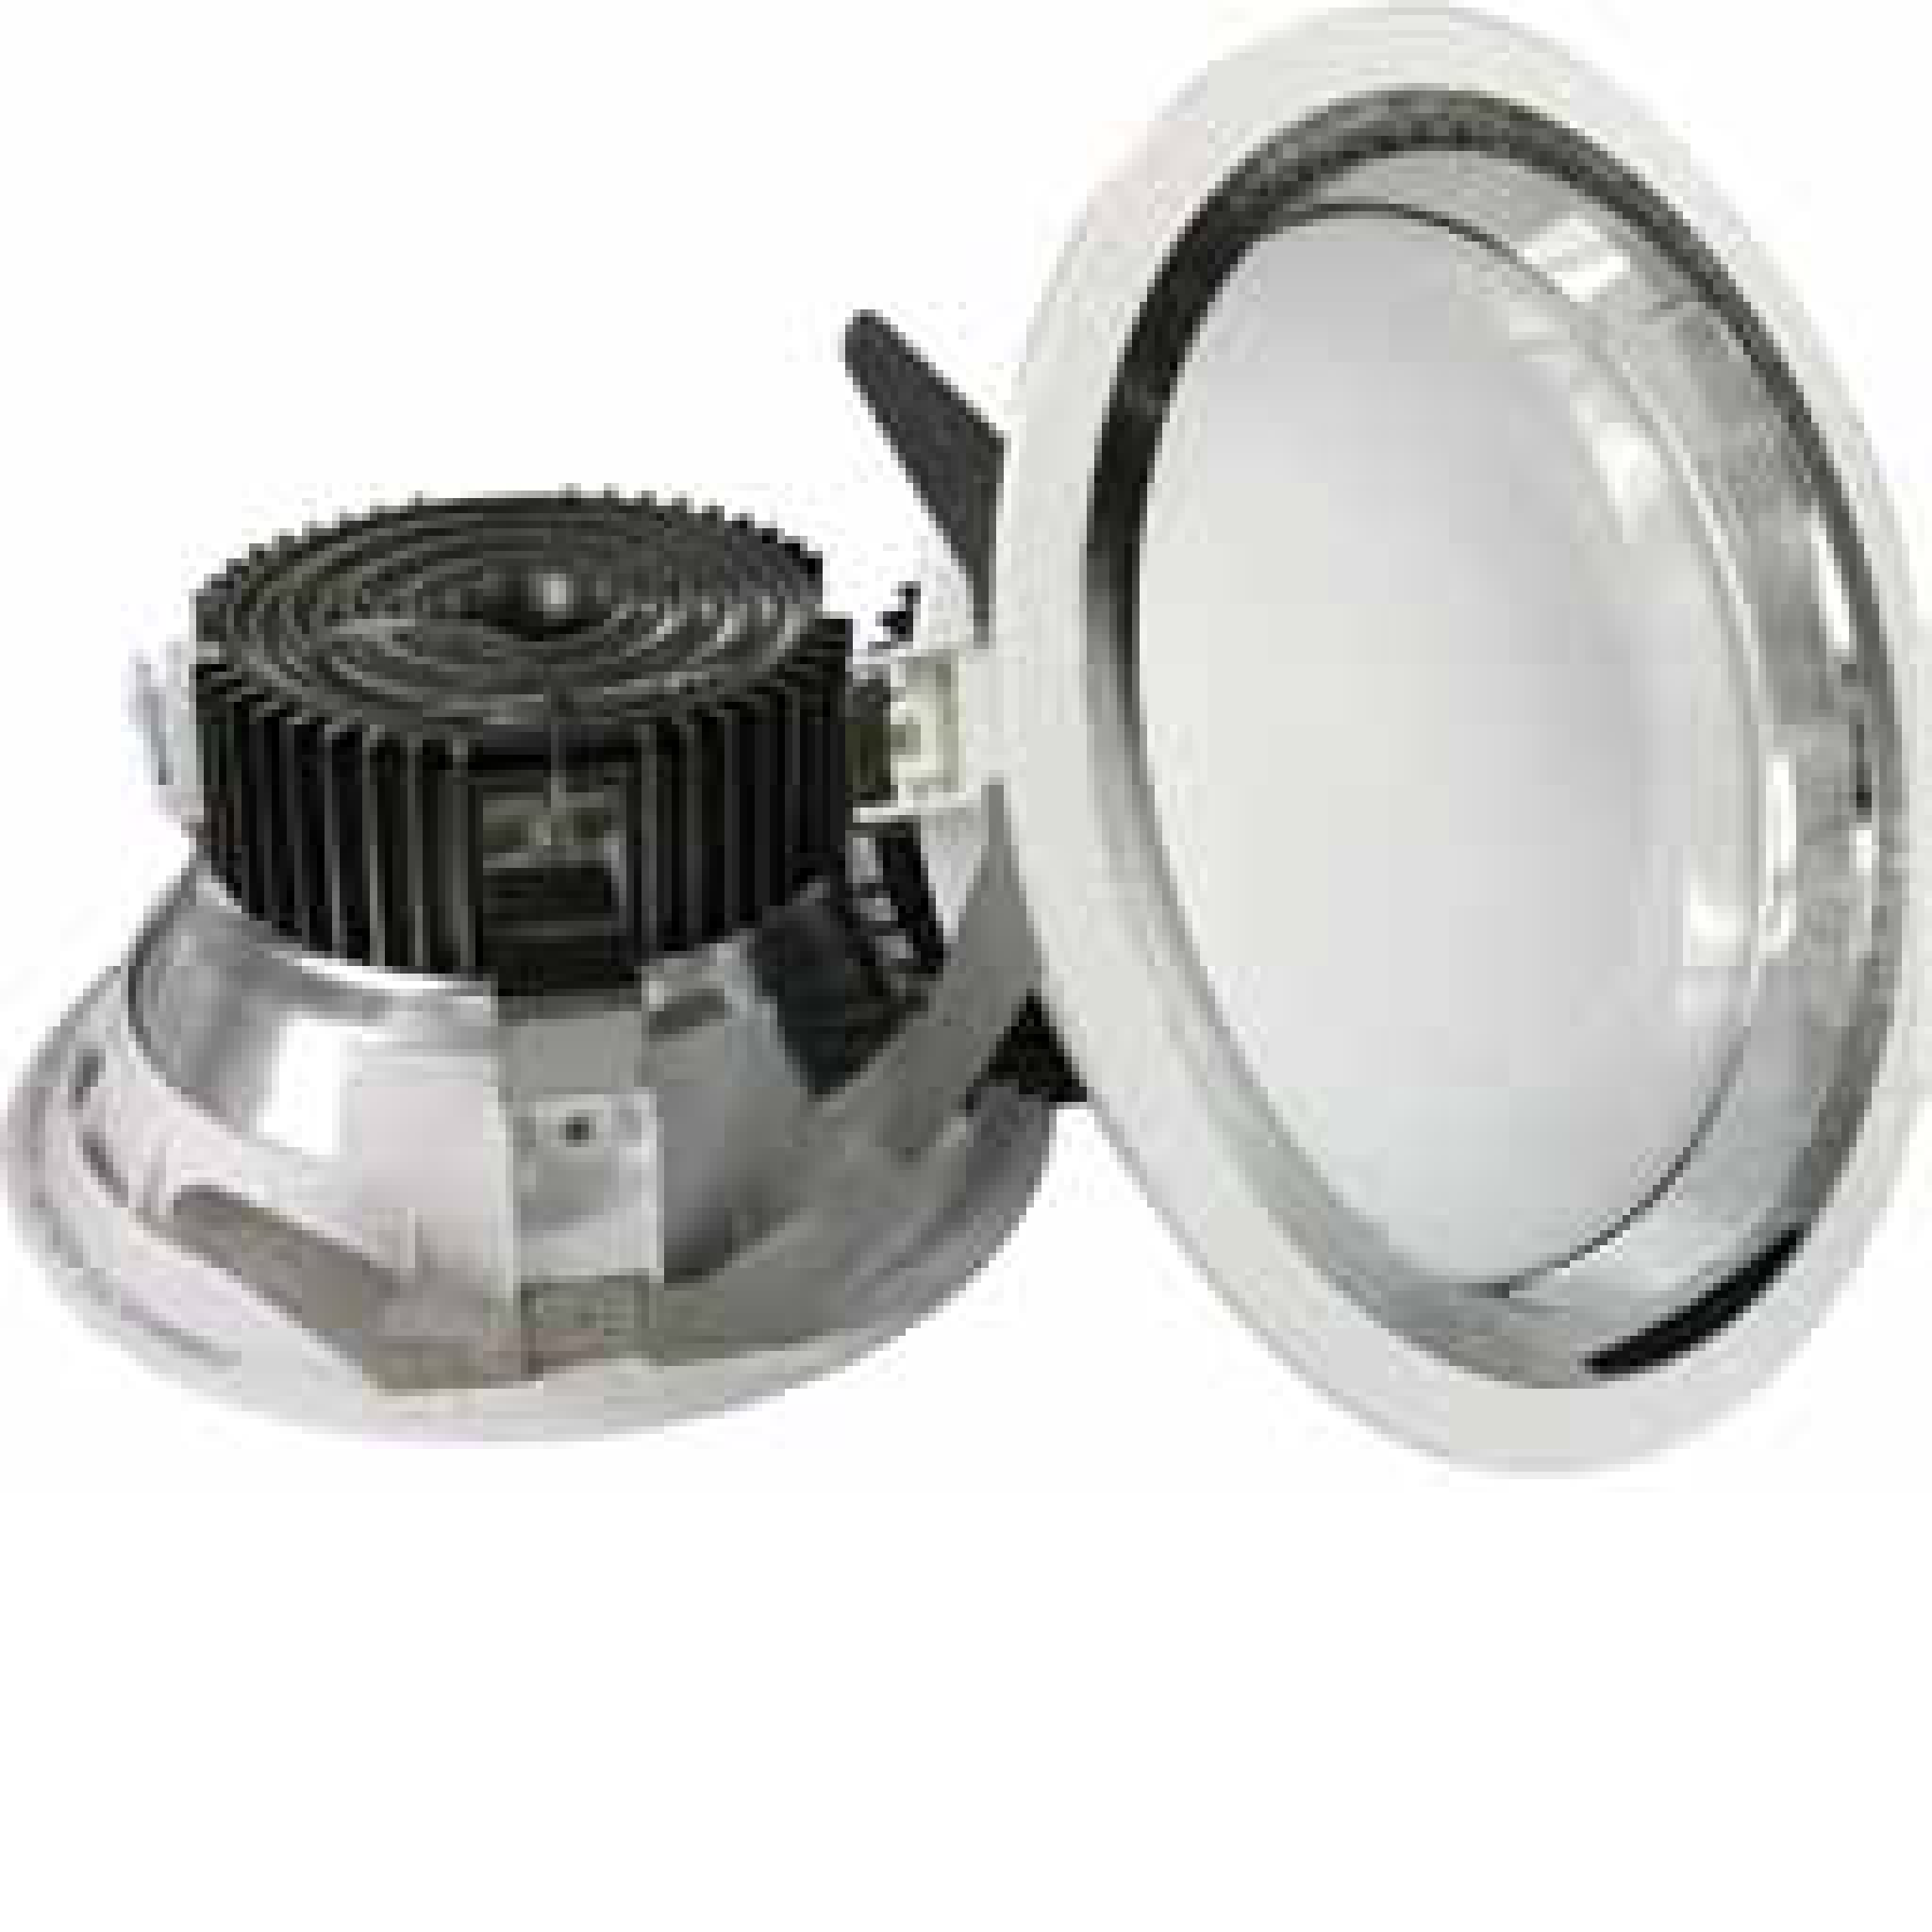 Maxibright LED G24 Downlight - 15W